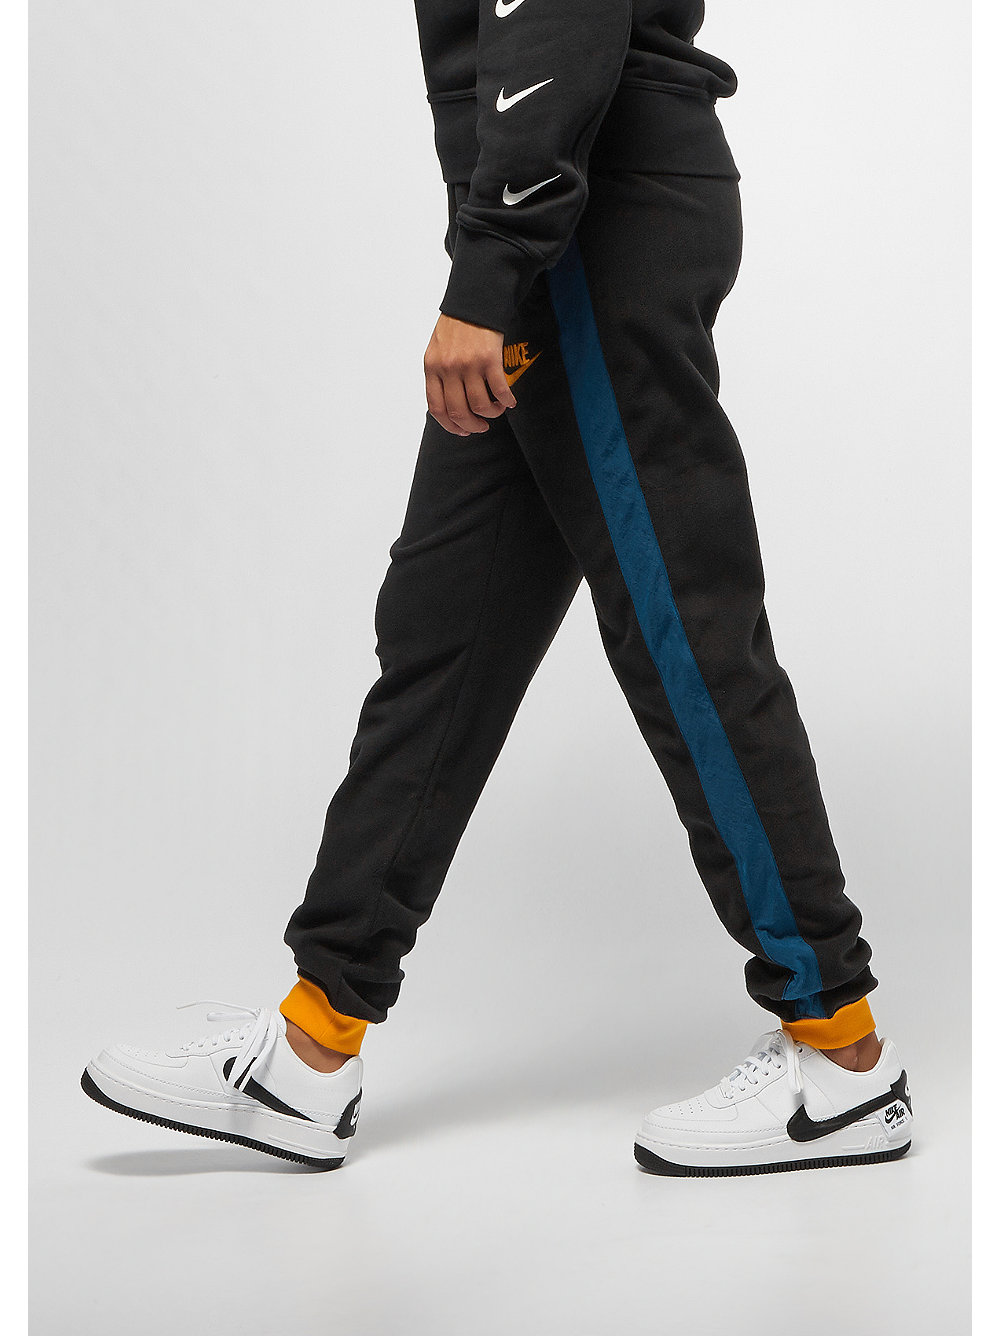 Nsw Forceorange Peel Blackblue Pant Polar k0PwX8nO